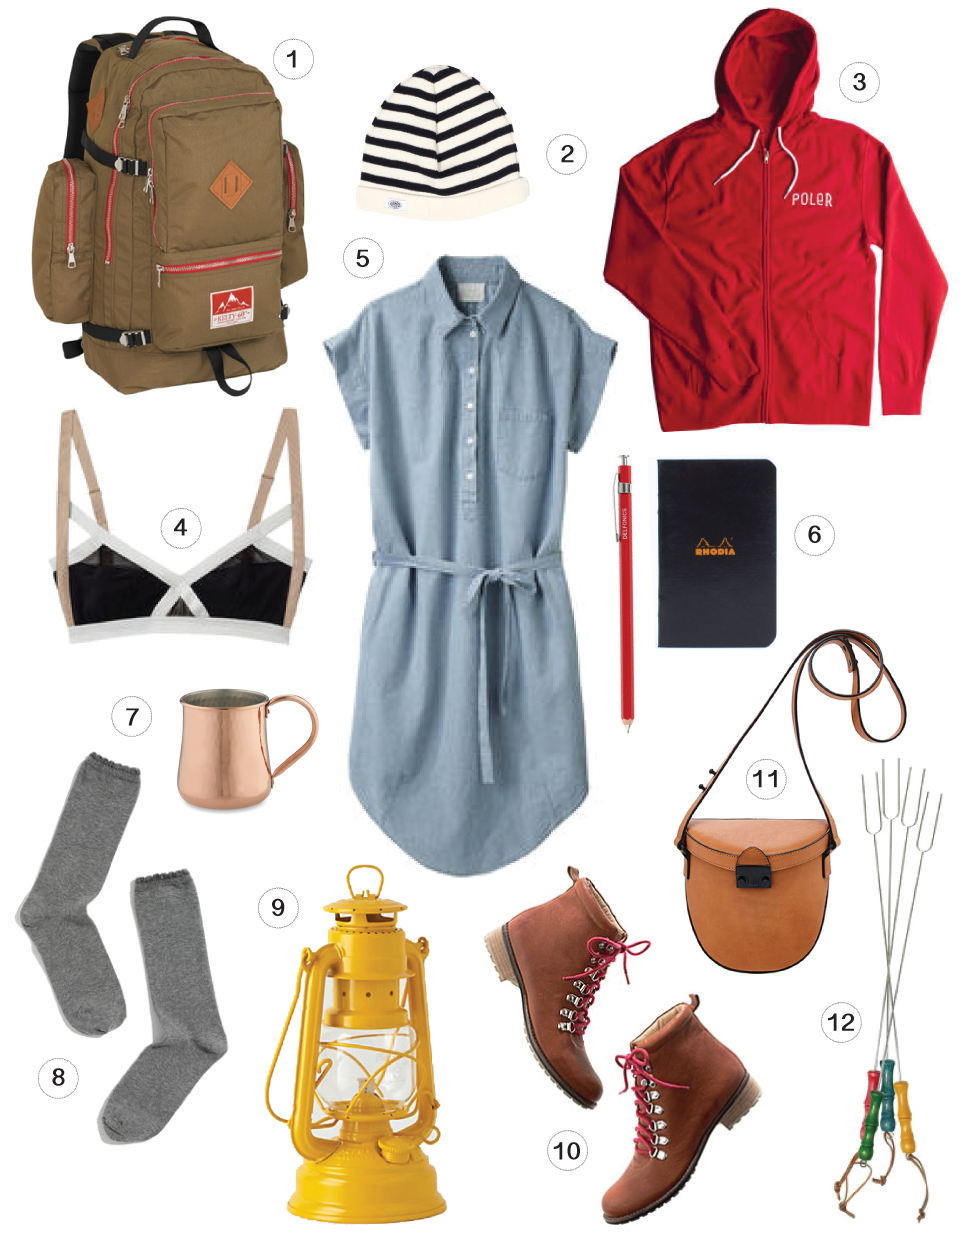 1 /  Wing Pack,  Kelty , 2 / Armor Lux Striped Watch Cap,  Dry Goods , 3 / Womens Venn Diagram Hoodie,  Poler , 4 / La Garconne Bra,  Polyvore , 5 / Chambray Shirtdress by Boy By Band Of Outsiders,  Polyvore , 6 / Defonics Pencil,  Jcrew  - Rhodia Notebook,  Needsupply , 7 / Cooper Mug,  Williams Sonoma , 8 / Lisa B. Scallop Edge Trouser Socks,  Madewell , 9 / Yellow Railroad Lantern,  Tydepool , 10 / Artika Boots by Matt Bernson,  Polyvore , 11 / Shooter Bag,  Loeffler Randall , 12 / Marshmallow Roasting Set,  Target .